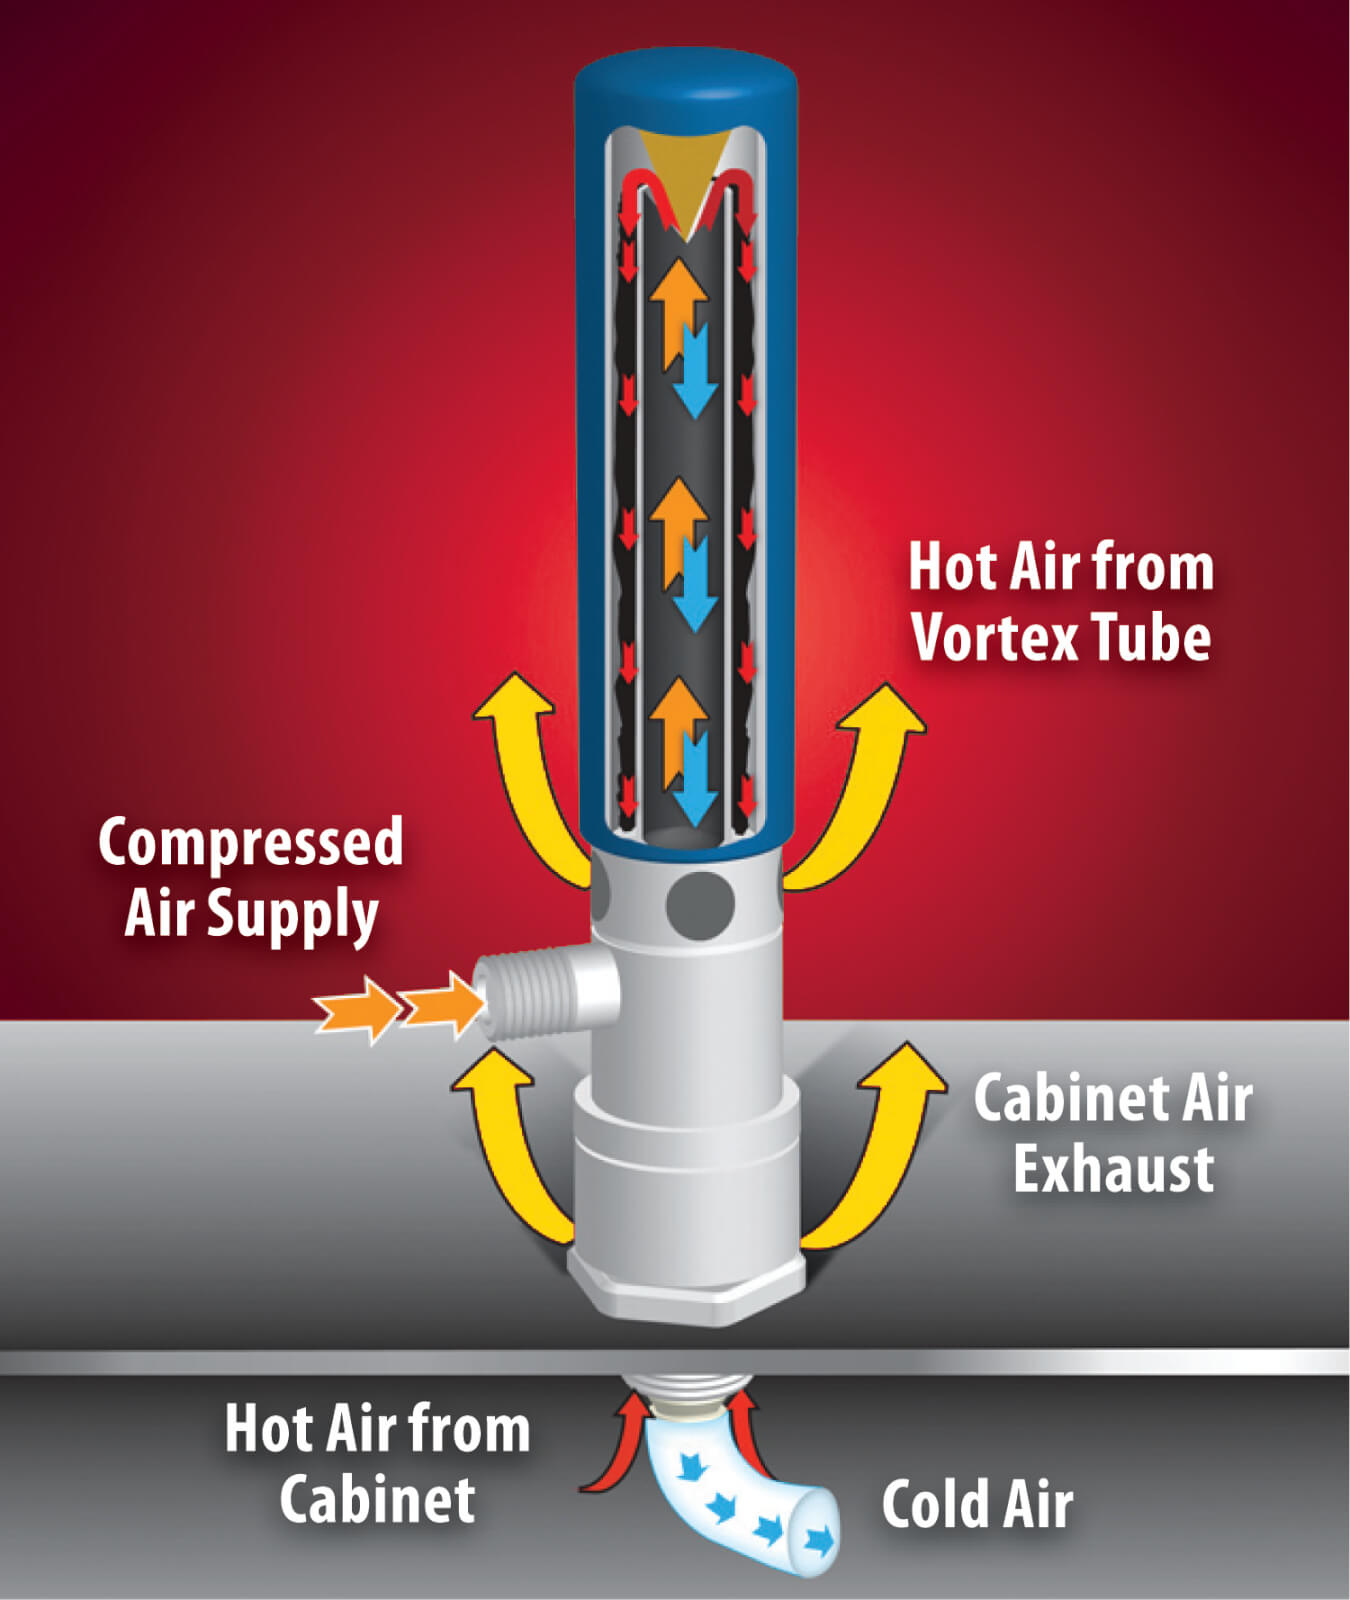 Vasopressor Flowchart besides How The Cabi  Cooler Works likewise Regular Air Knife Front View together with  together with Px Solar Updraft Tower Svg. on air vortex cooling tube